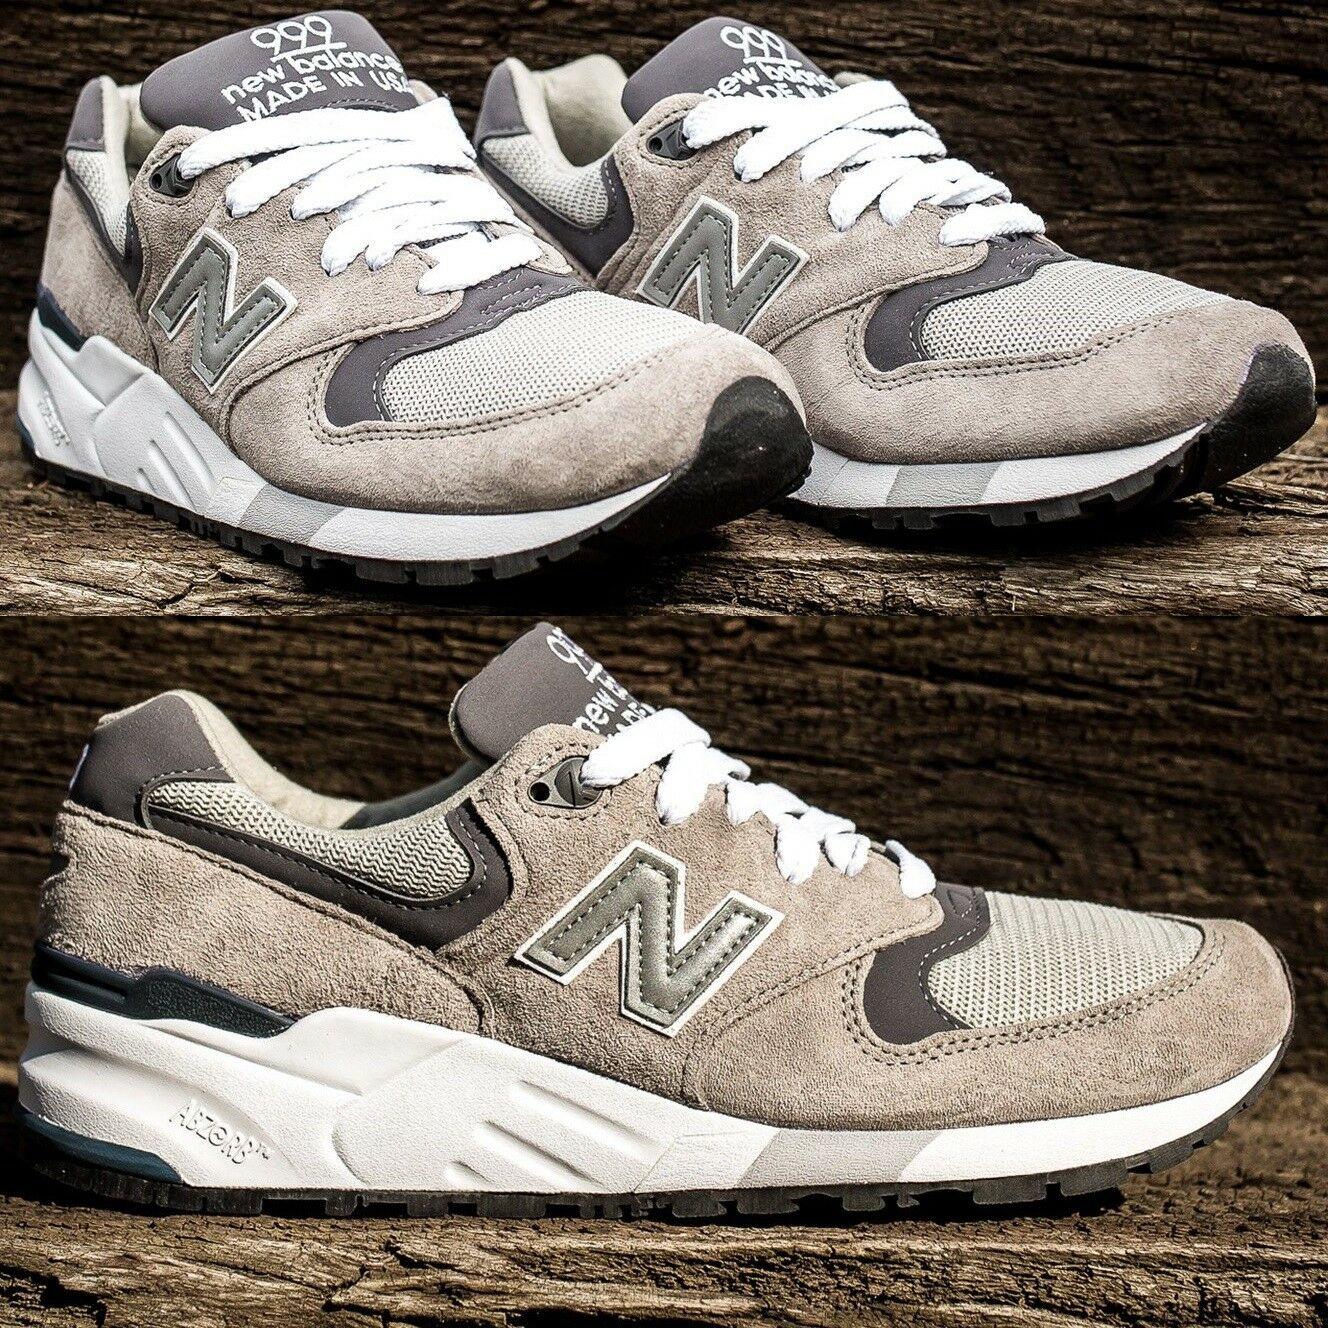 NEW BALANCE 999 Made in USA GRAY / WHITE MEN'S SUEDE SHOE PREMIUM COMFY SNEAKER